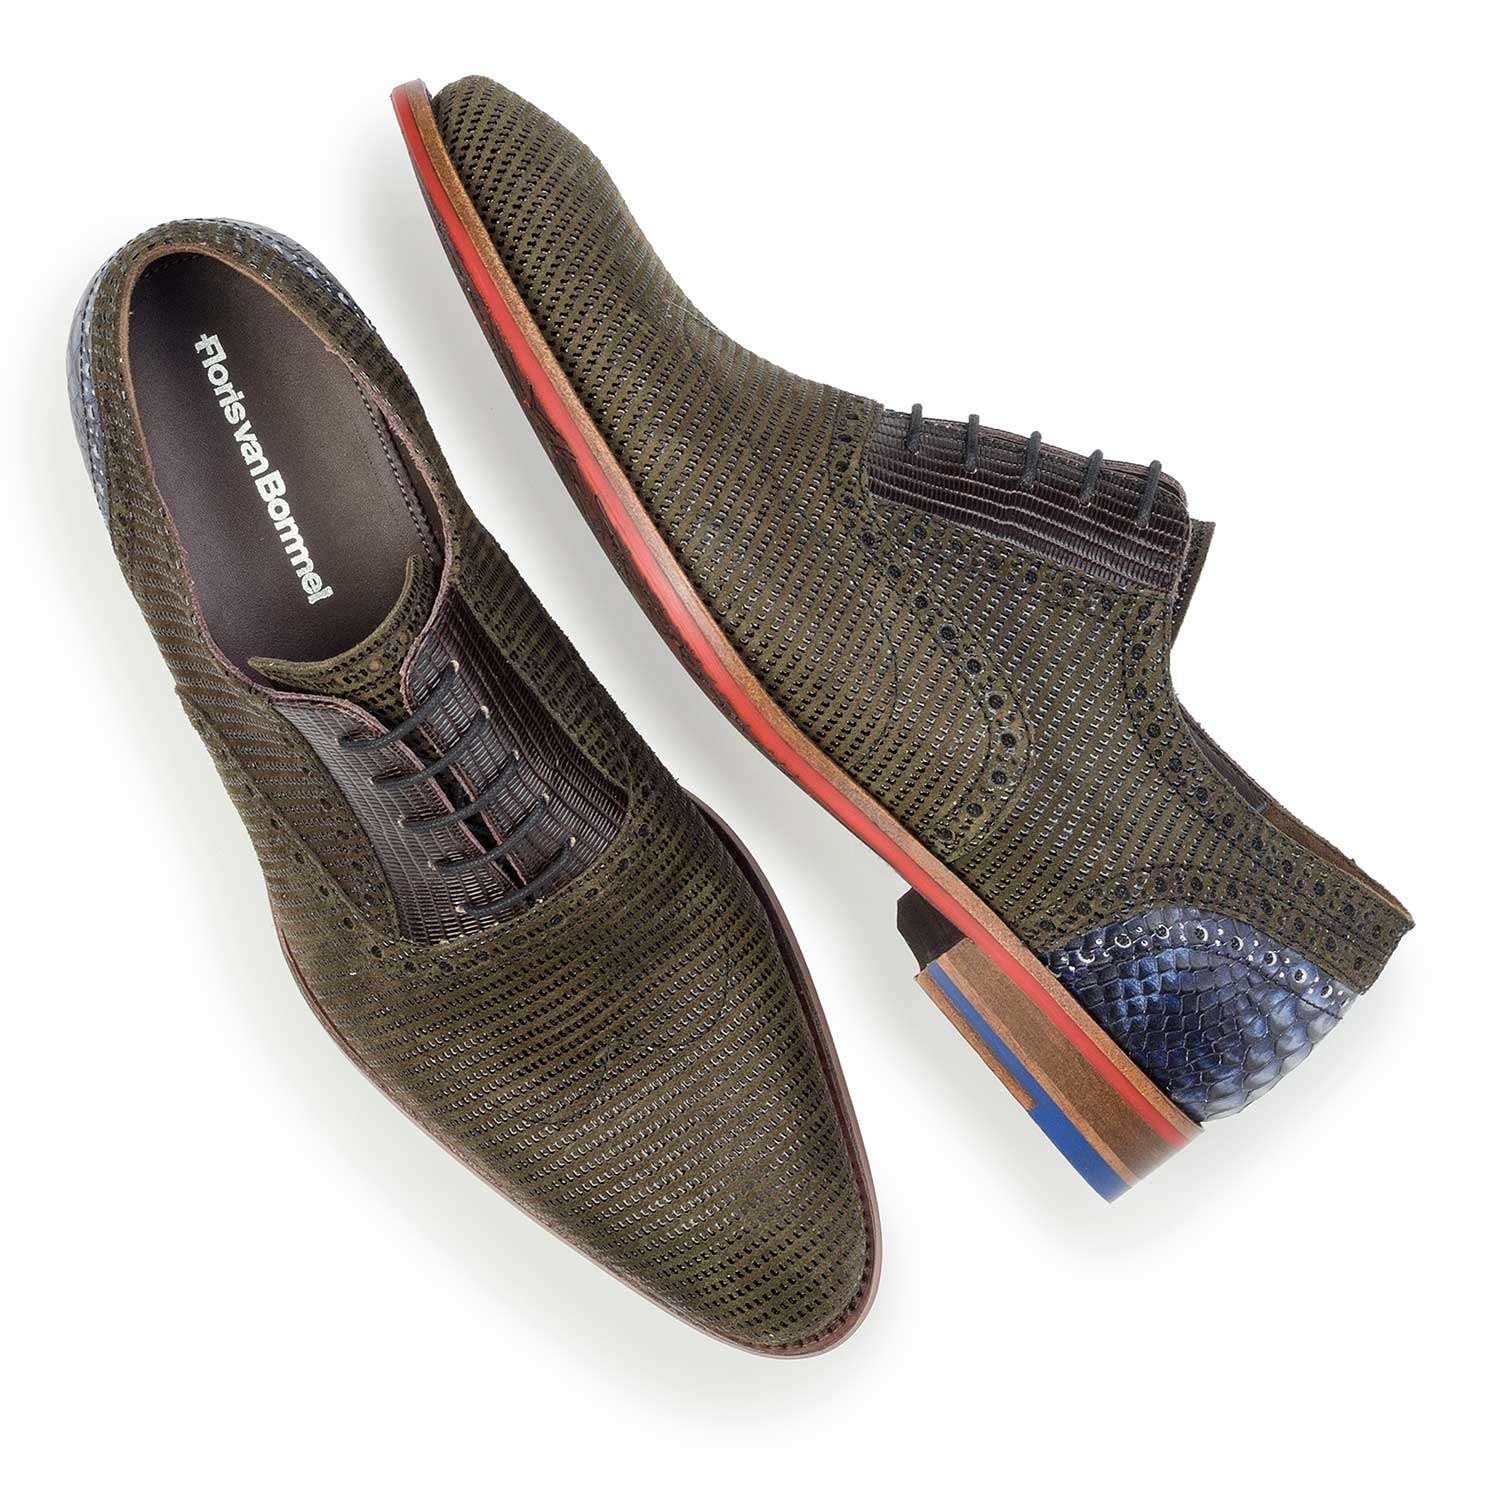 19114/08 - Olive green patterned suede leather lace shoe